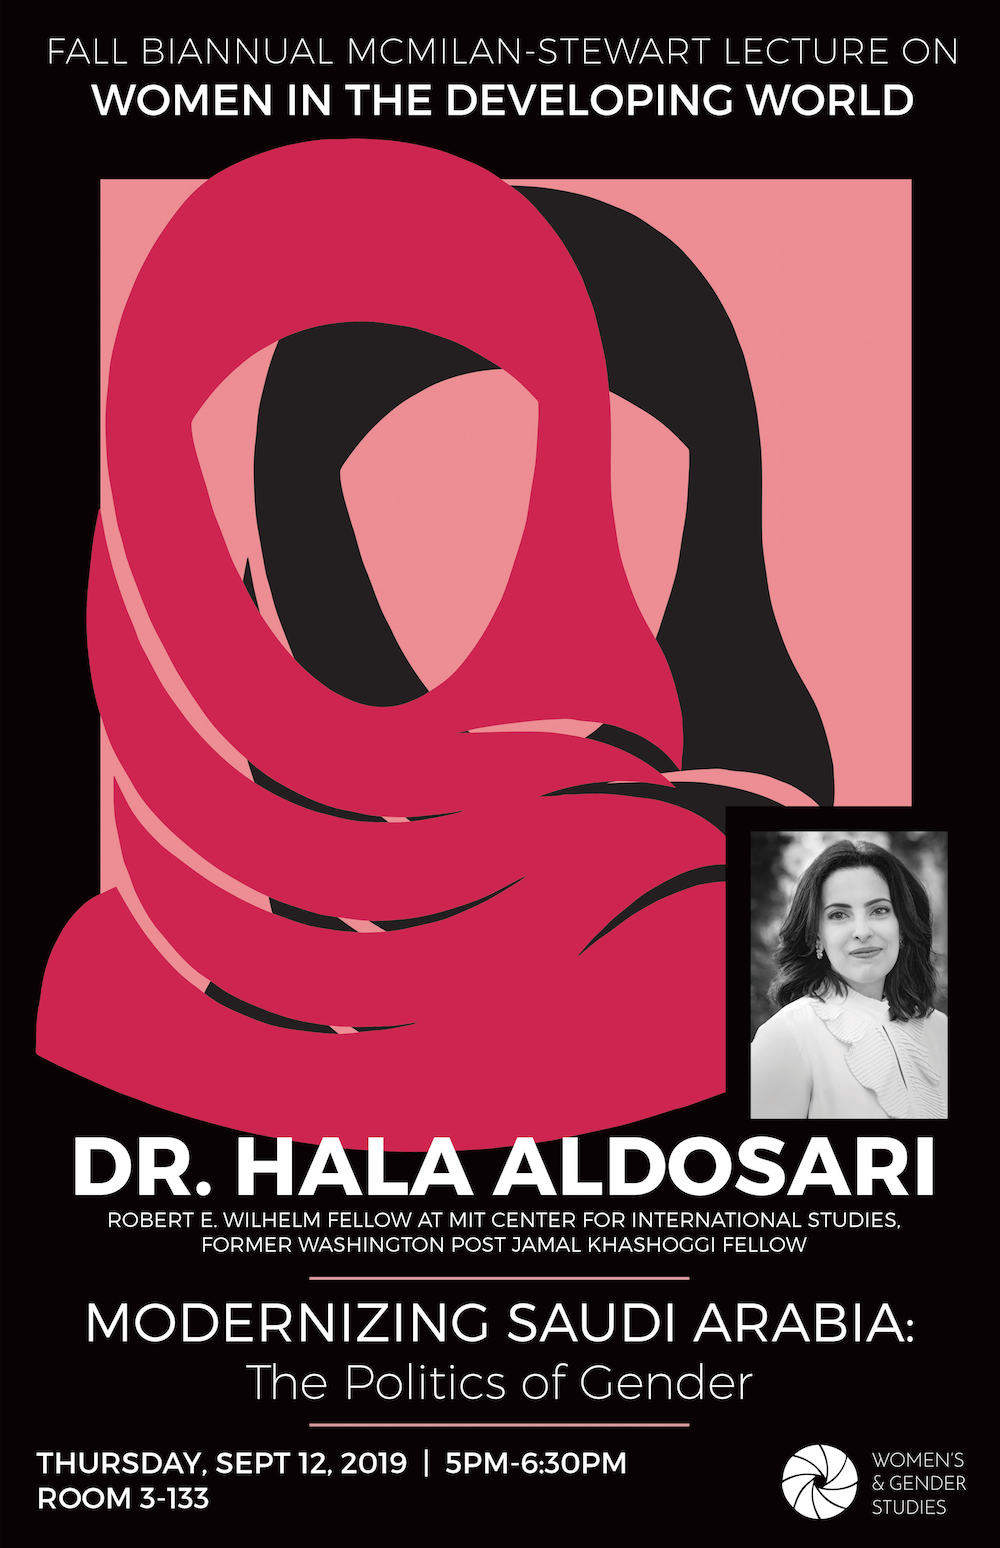 """Modernizing Saudi Arabia: The politics of gender"" Dr. Hala Aldosari"